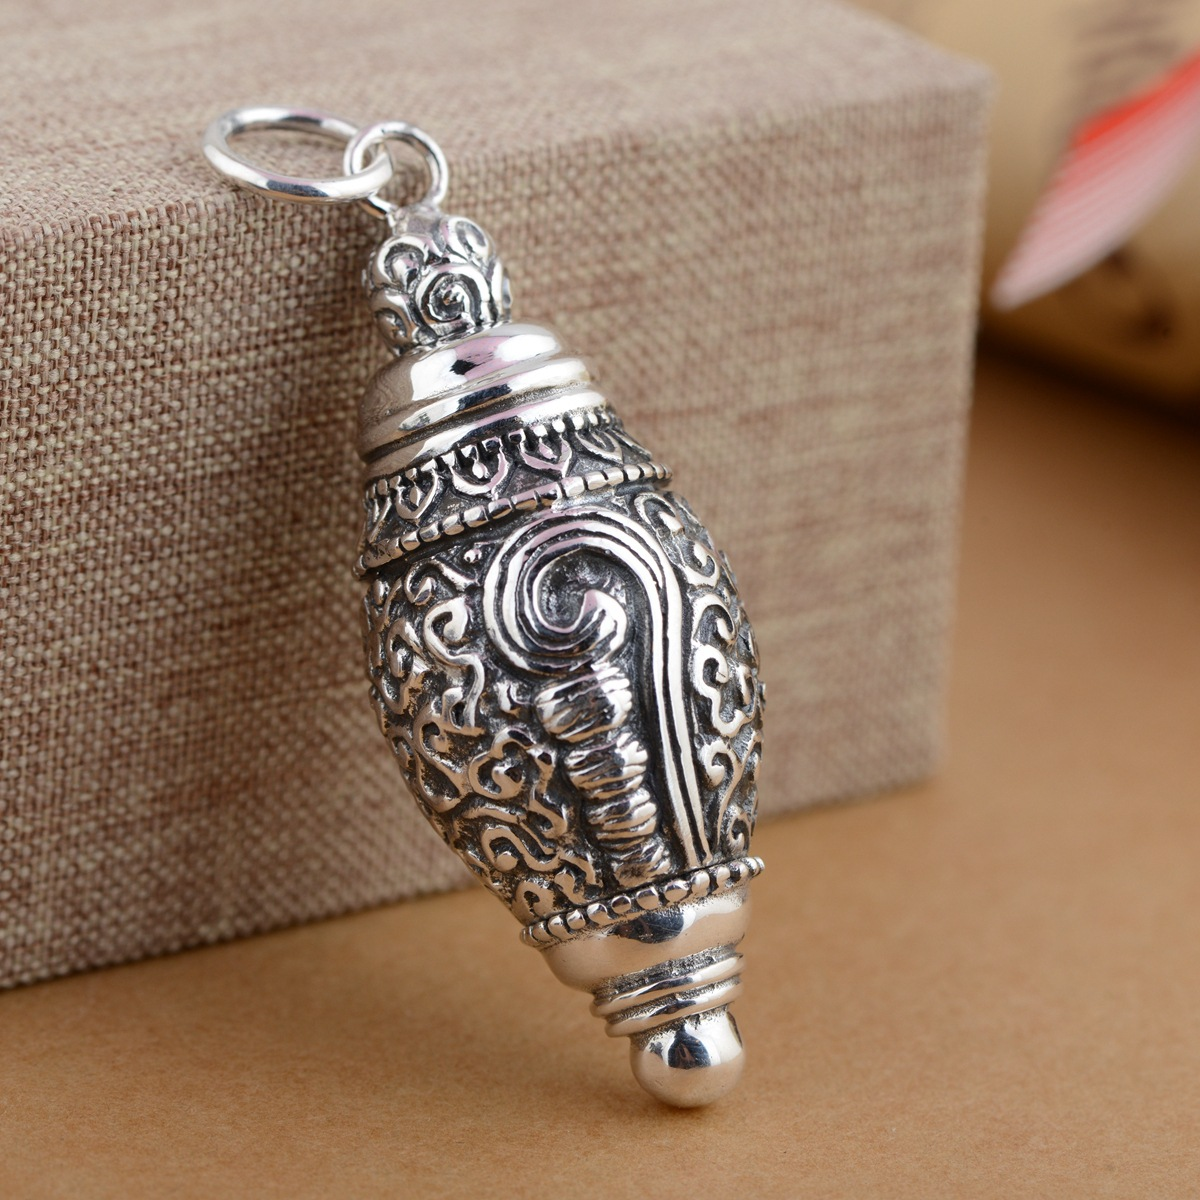 [silver] deer king gawu Box Pendant Shurangama mantra S925 sterling silver wholesale silver style text deer king jewelry crystal pendant silver inlaid silver fox s925 wholesale margin of recruit personality styles